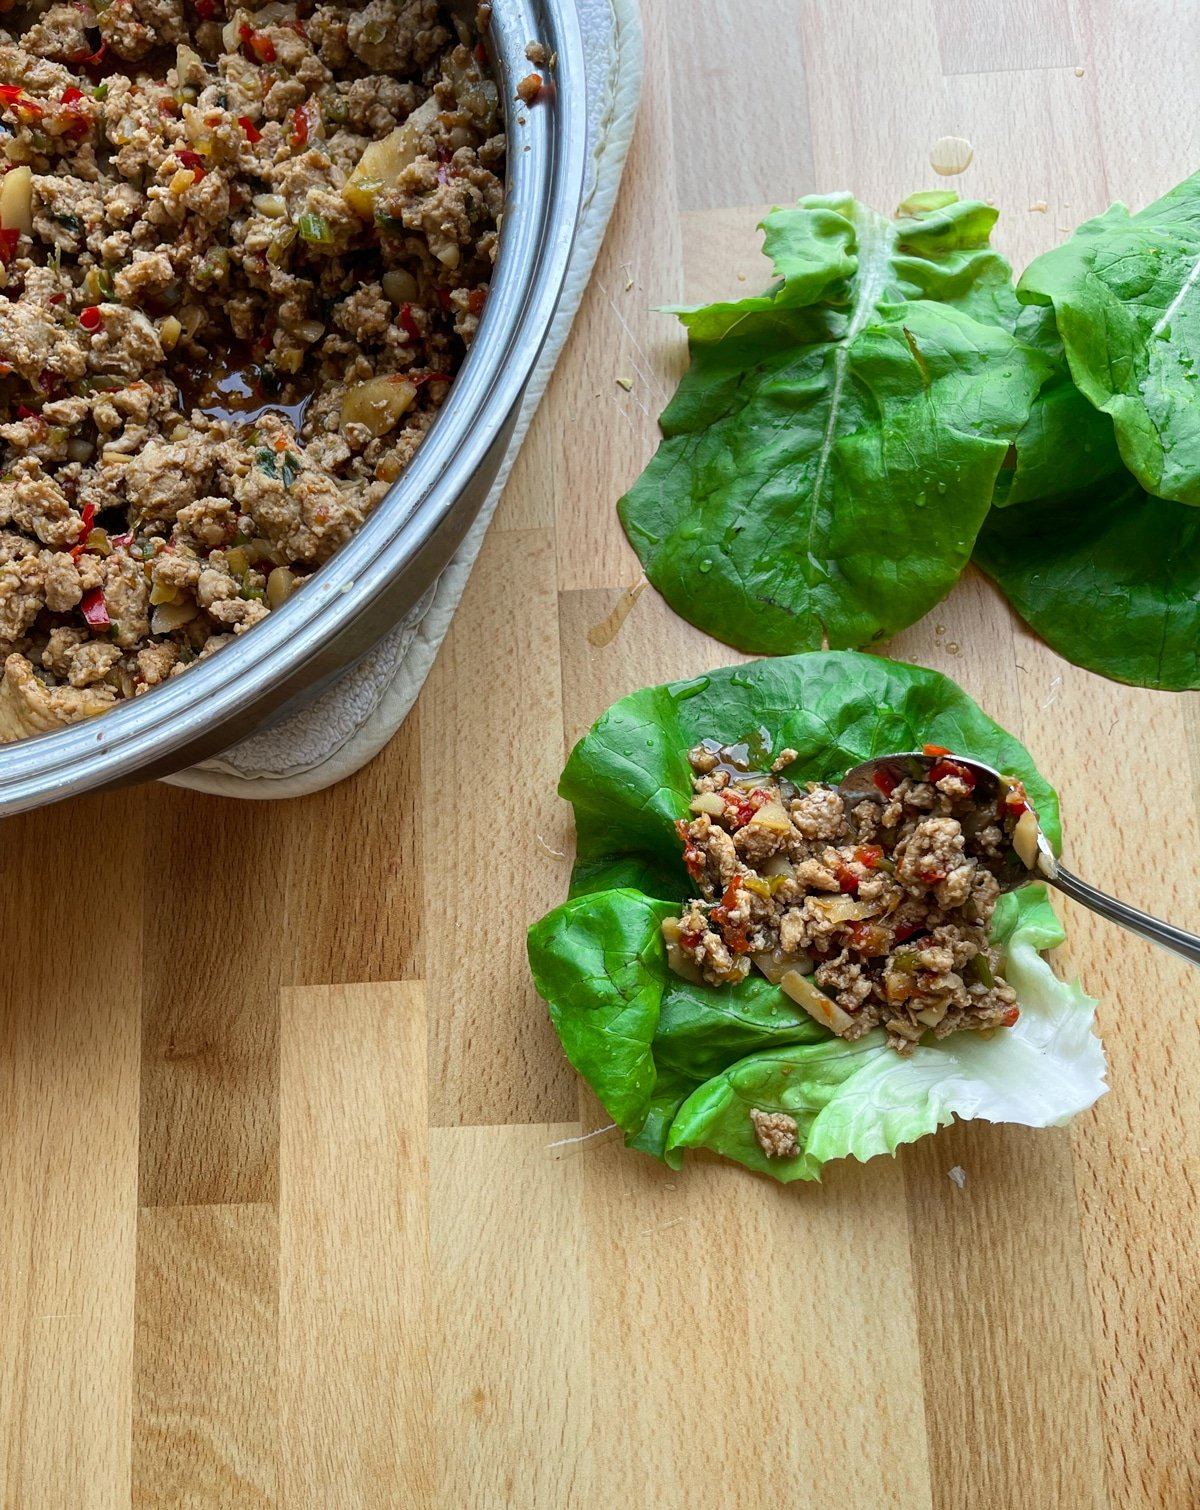 Person scooping Asian lettuce wrap mixture into fresh lettuce leafs.